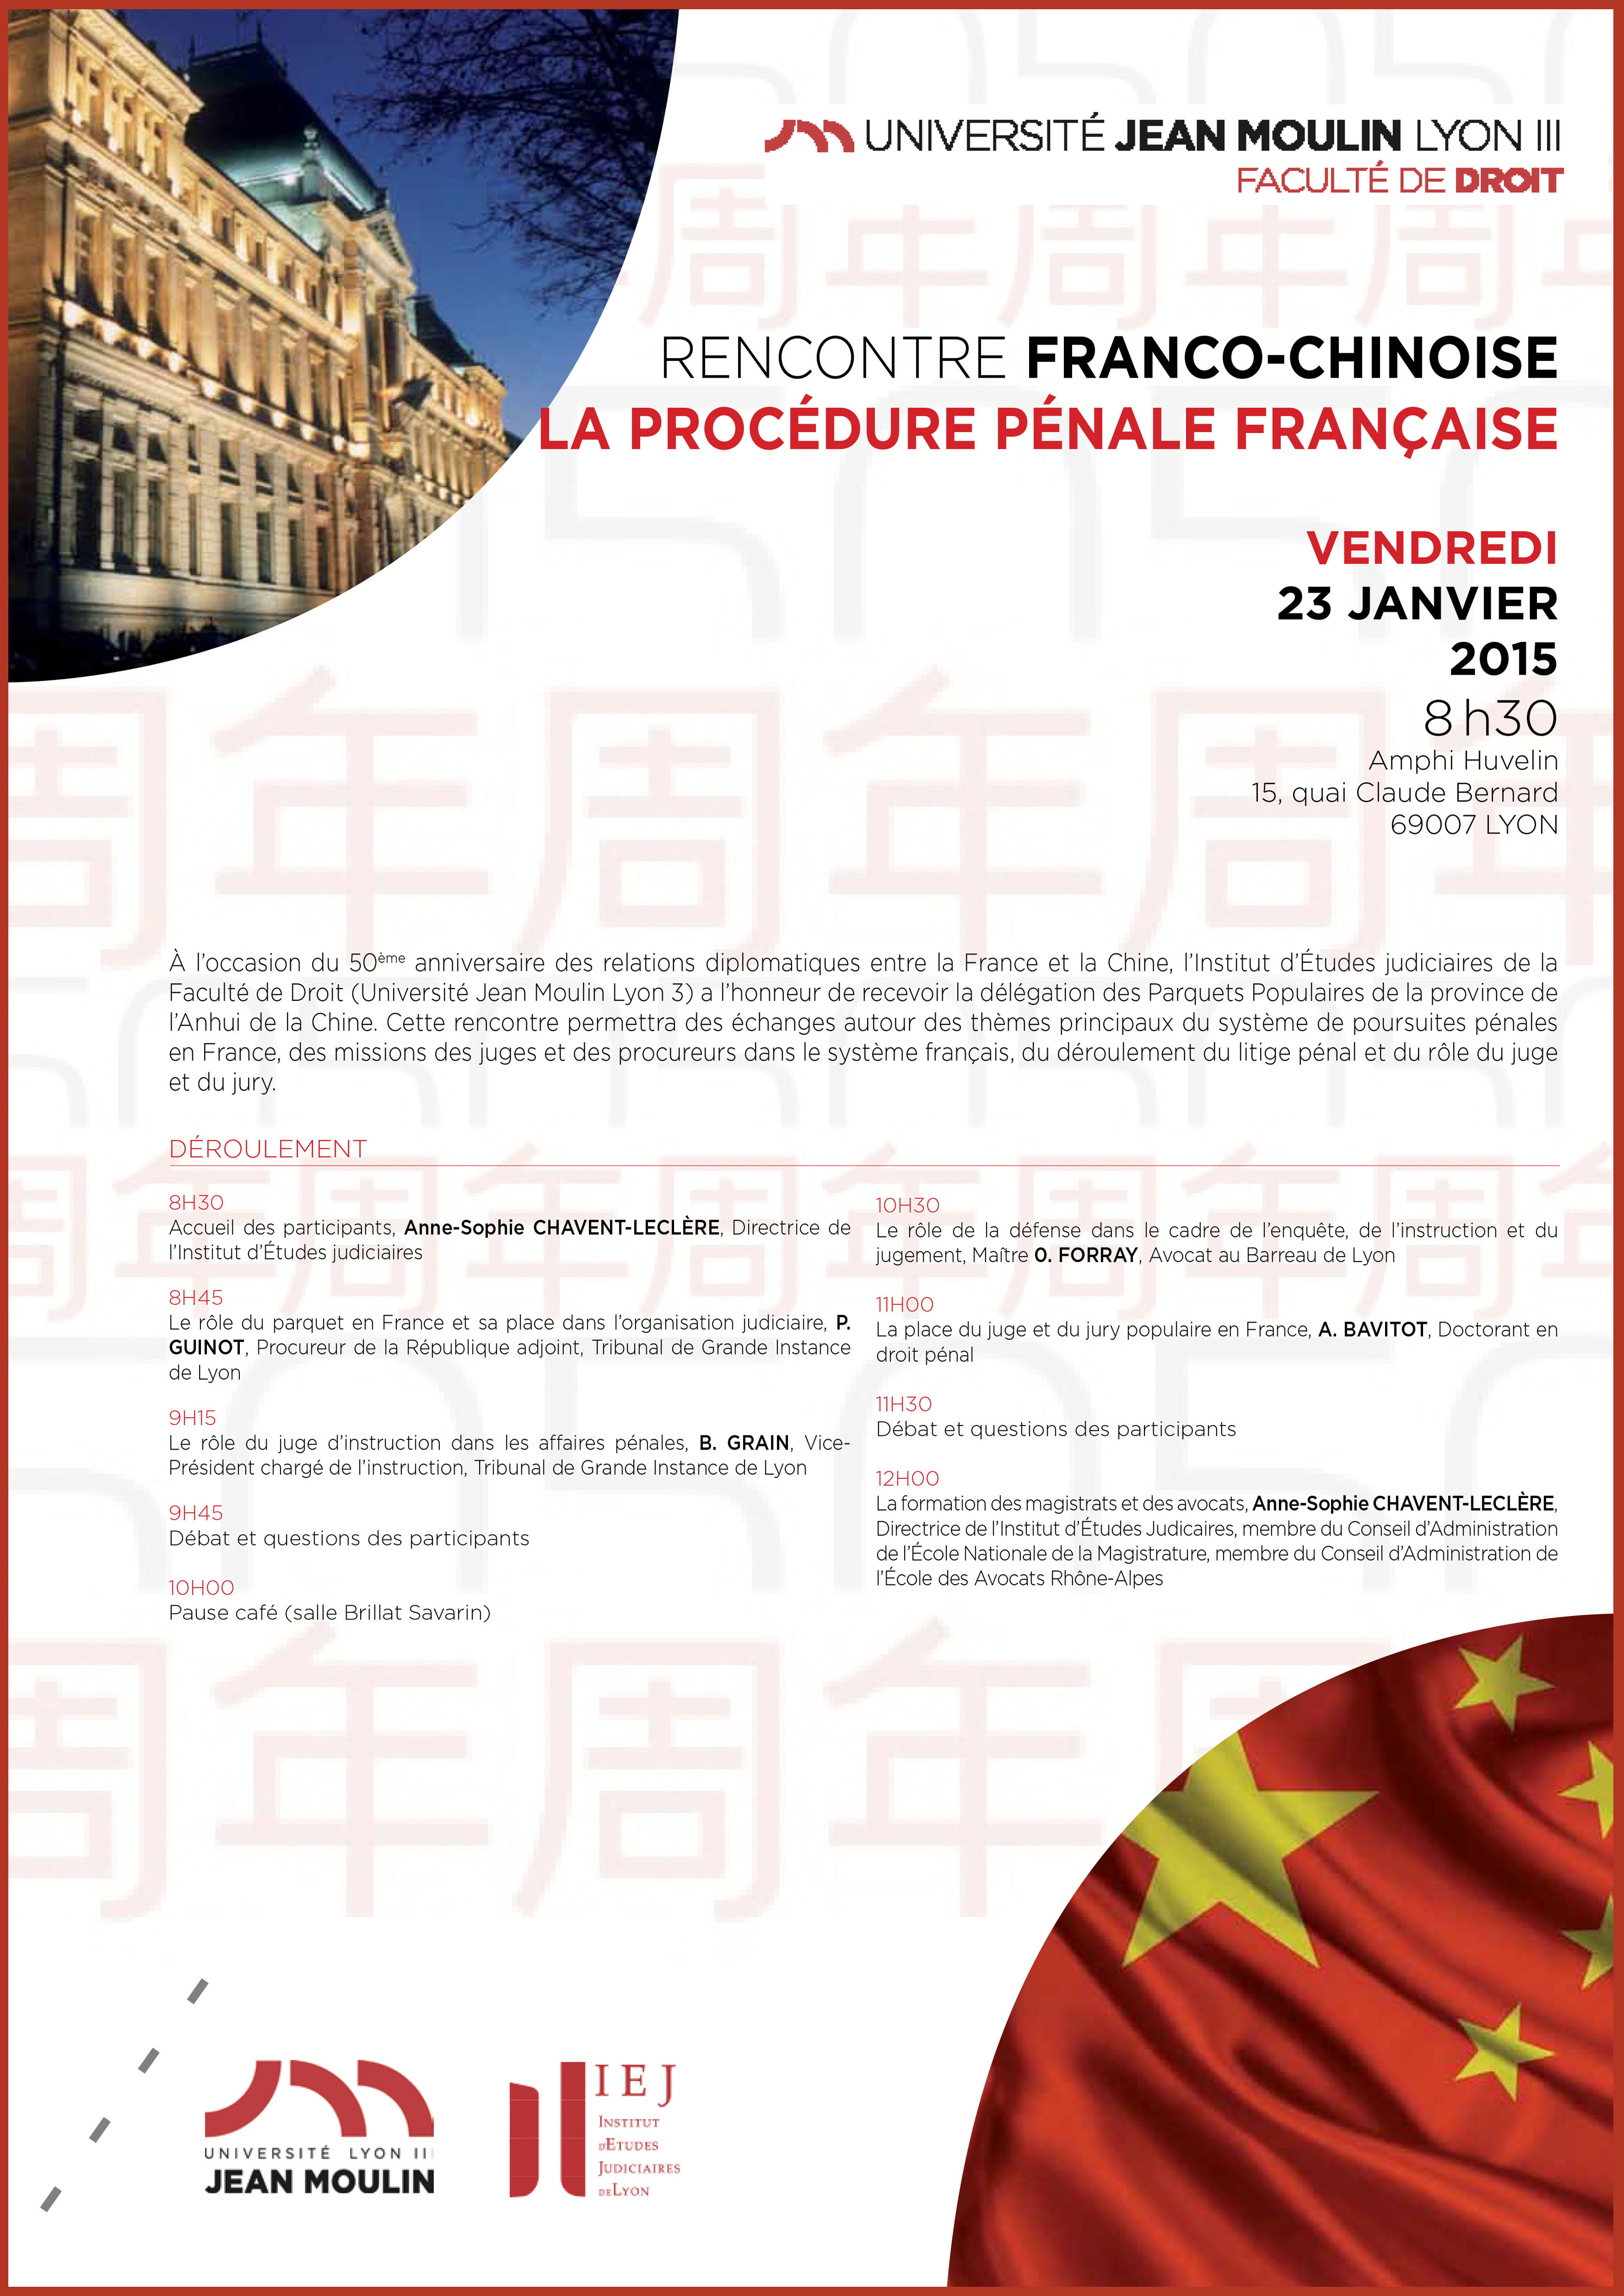 programme rencontre franco-chinoise